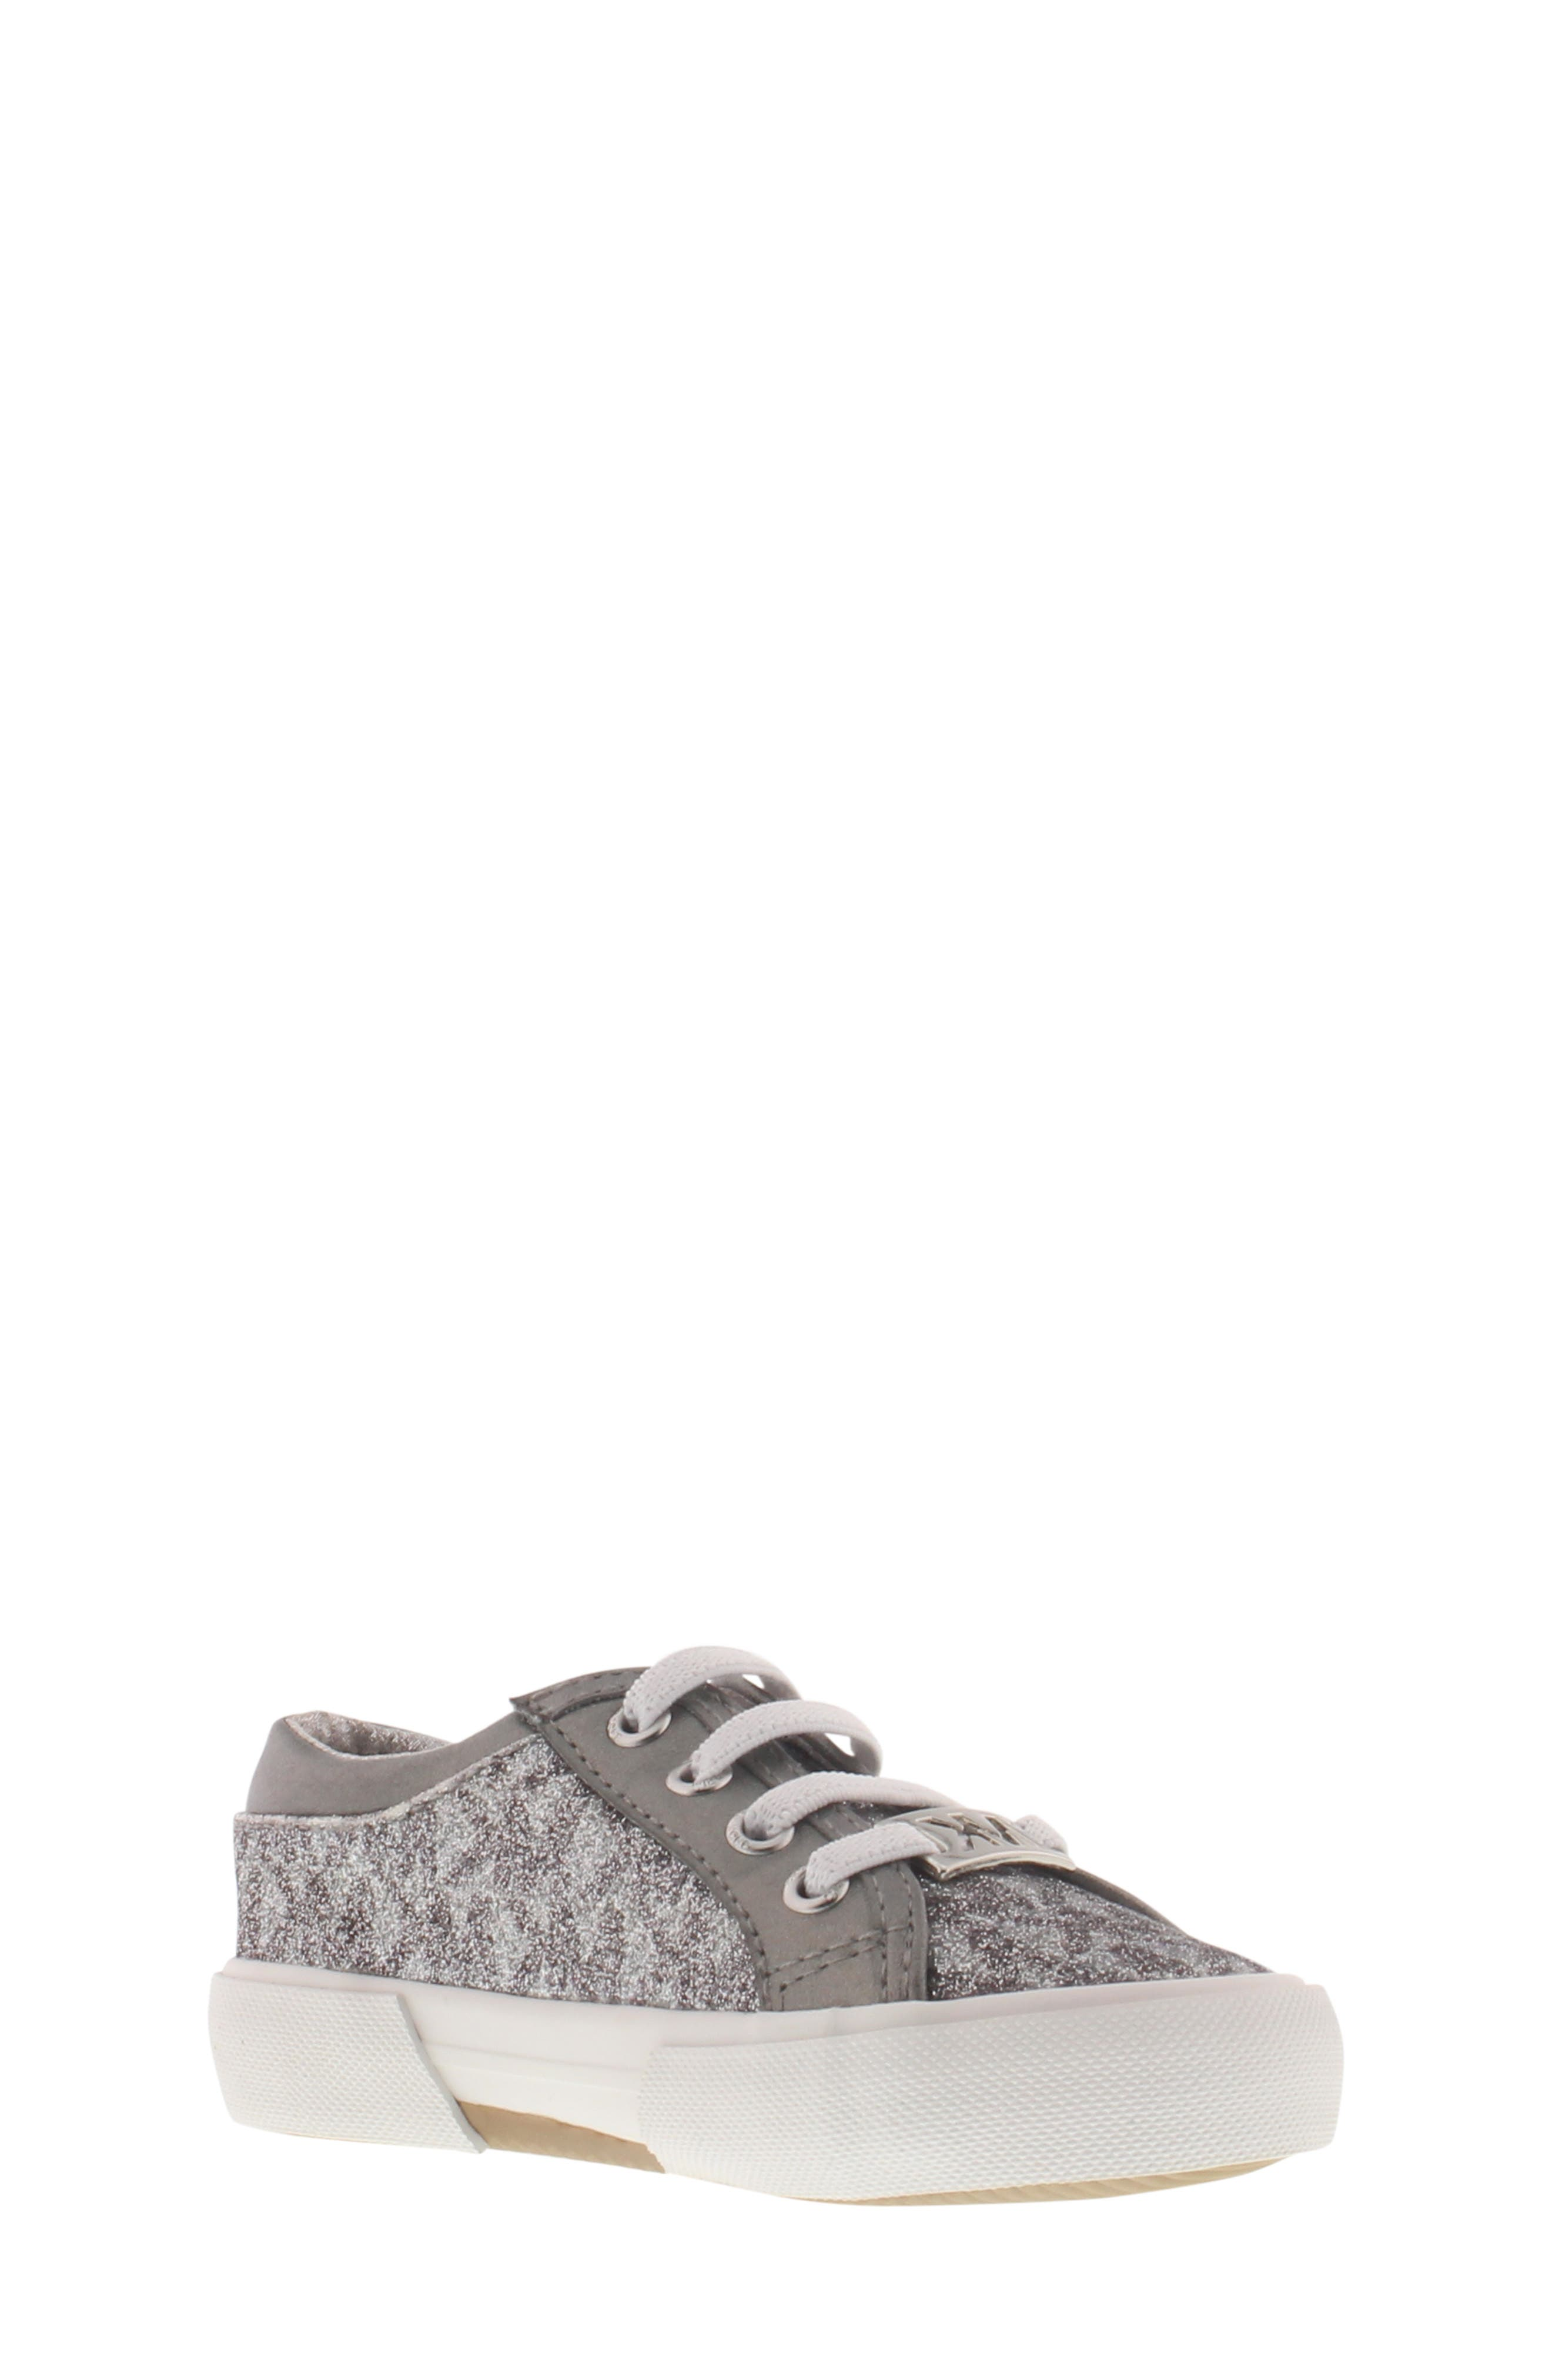 Ima Low Top Sneaker,                             Main thumbnail 1, color,                             GUNMETAL/ GUNMETAL